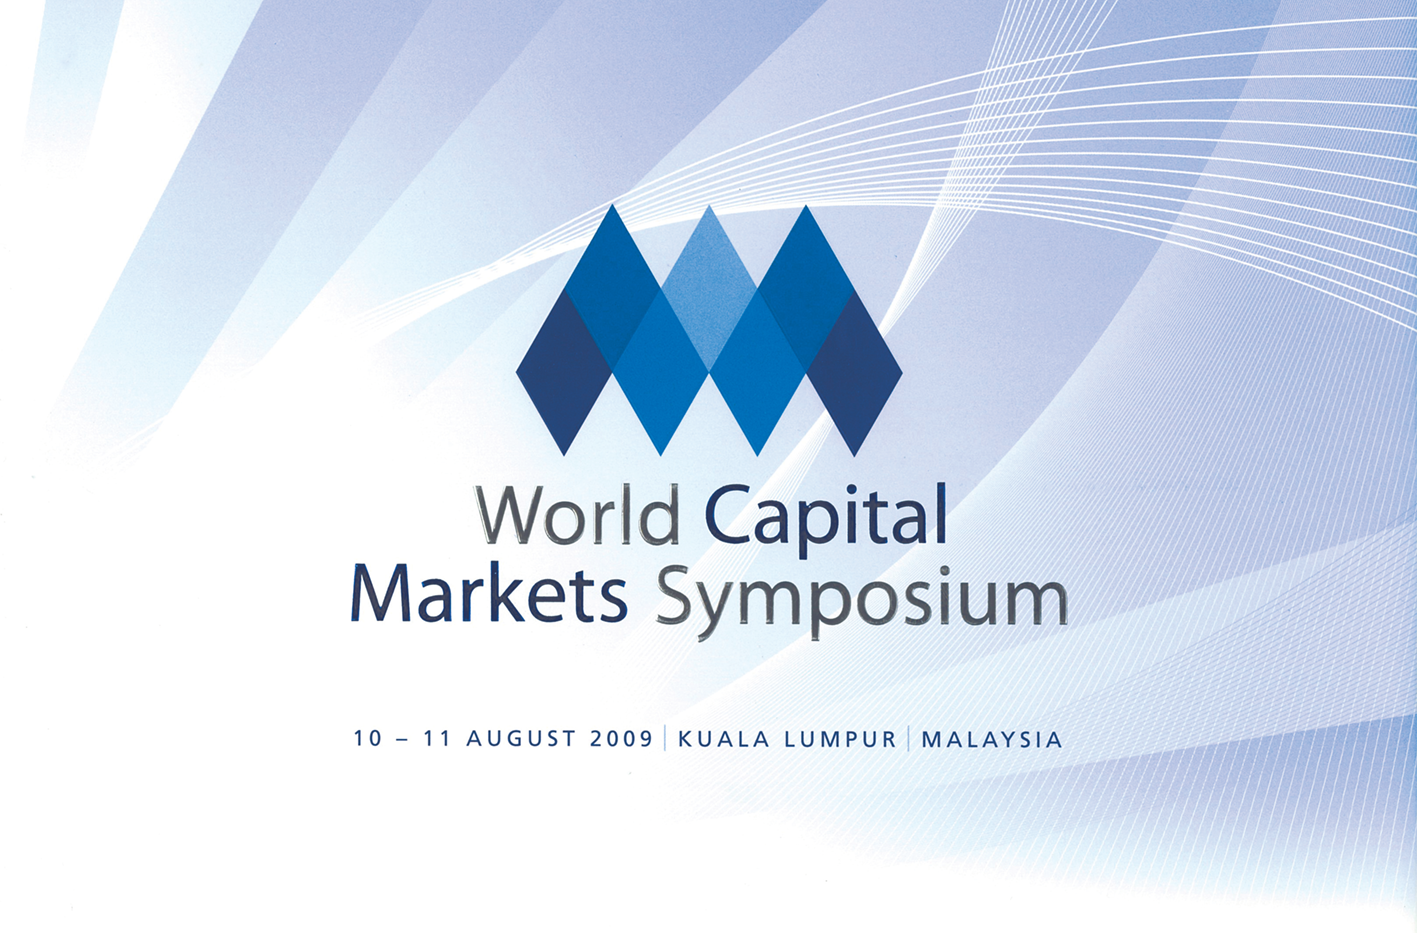 World Capital Markets Symposium 2009 Coffee Table Book (front cover)